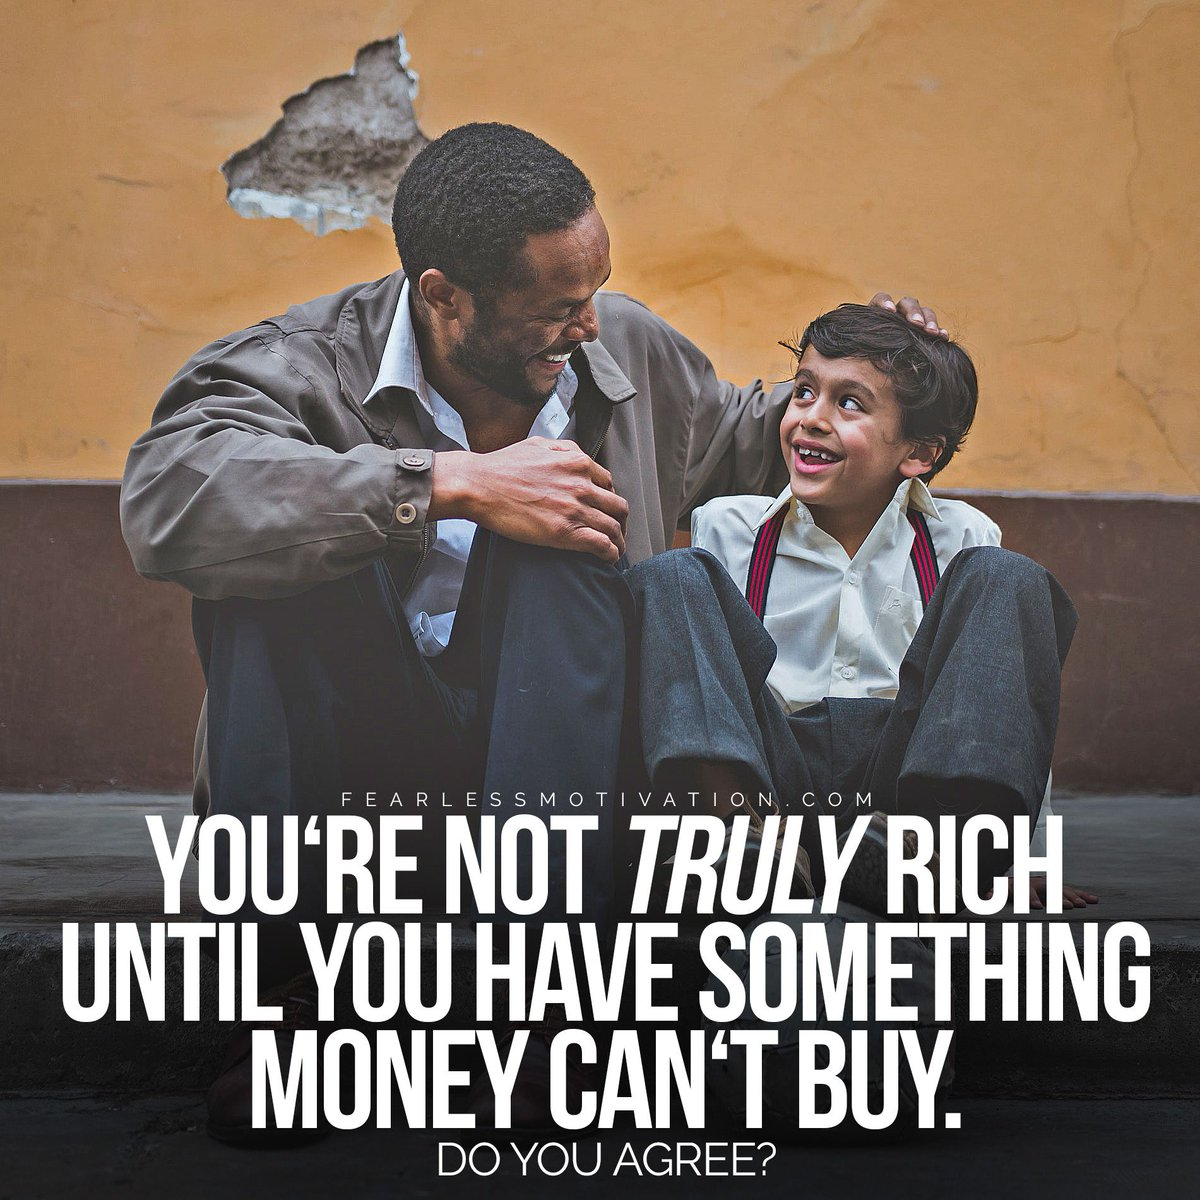 Do you agree? A rich bank account doesnt make you rich. A rich HEART makes you rich.